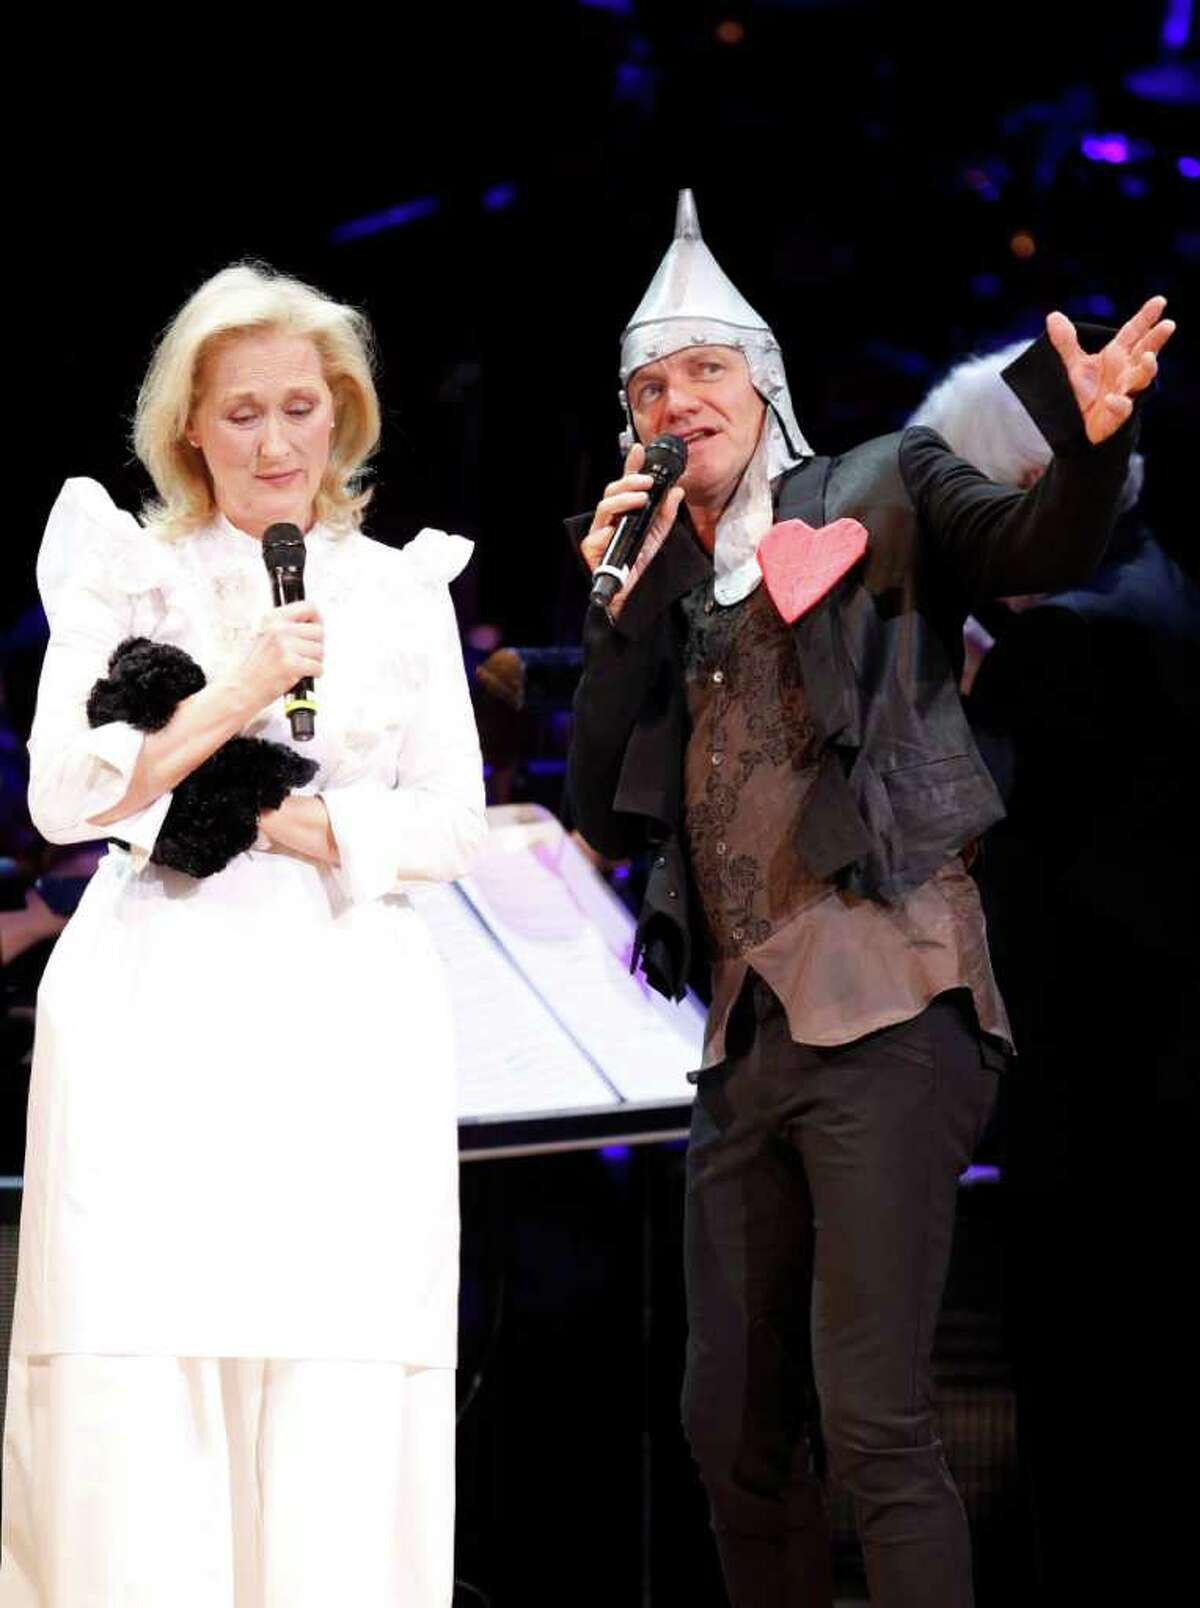 Meryl Streep and Sting perform dressed as characters from The Wizard of Oz during the Revlon Concert for the Rainforest Fund at Carnegie Hall, Tuesday, April 3, 2012 in New York.